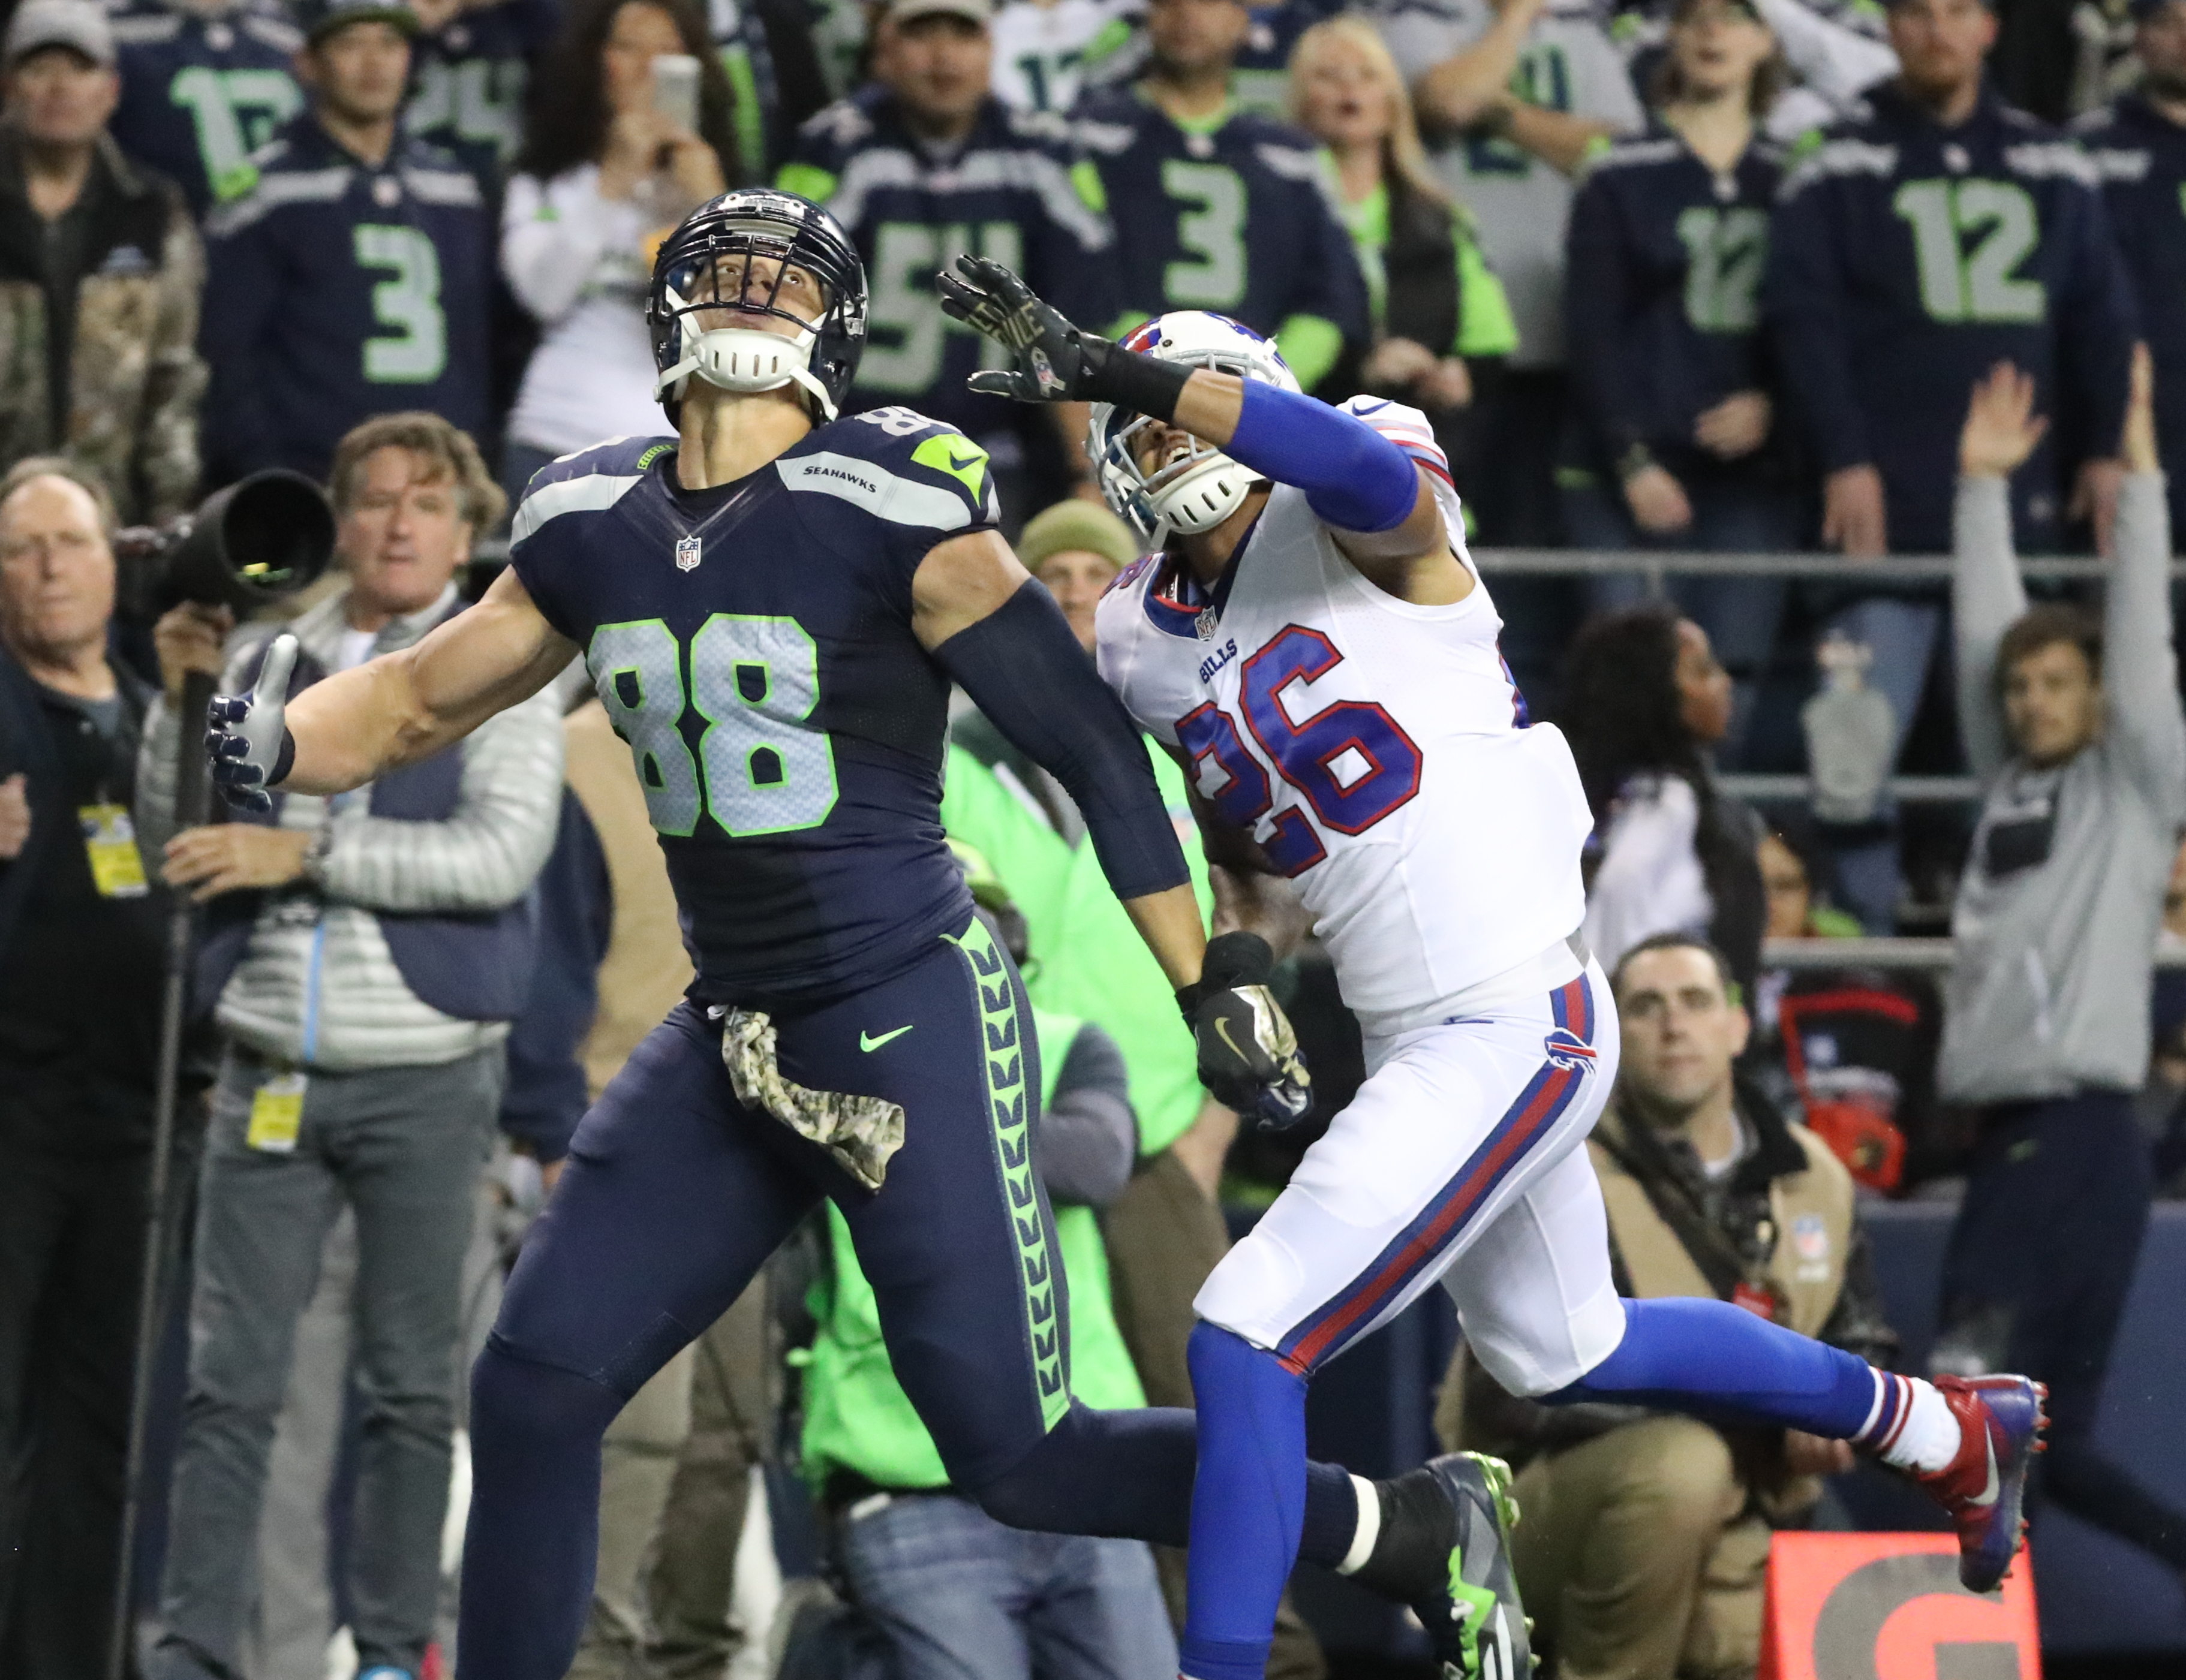 Buffalo Bills strong safety Robert Blanton (26) tries to defend Seattle Seahawks tight end Jimmy Graham (88) before Graham caught a touchdown pass in the second  quarter of a game at CenturyLink Field in Seattle on Monday, Nov.  7, 2016.  (James P. McCoy/Buffalo News)